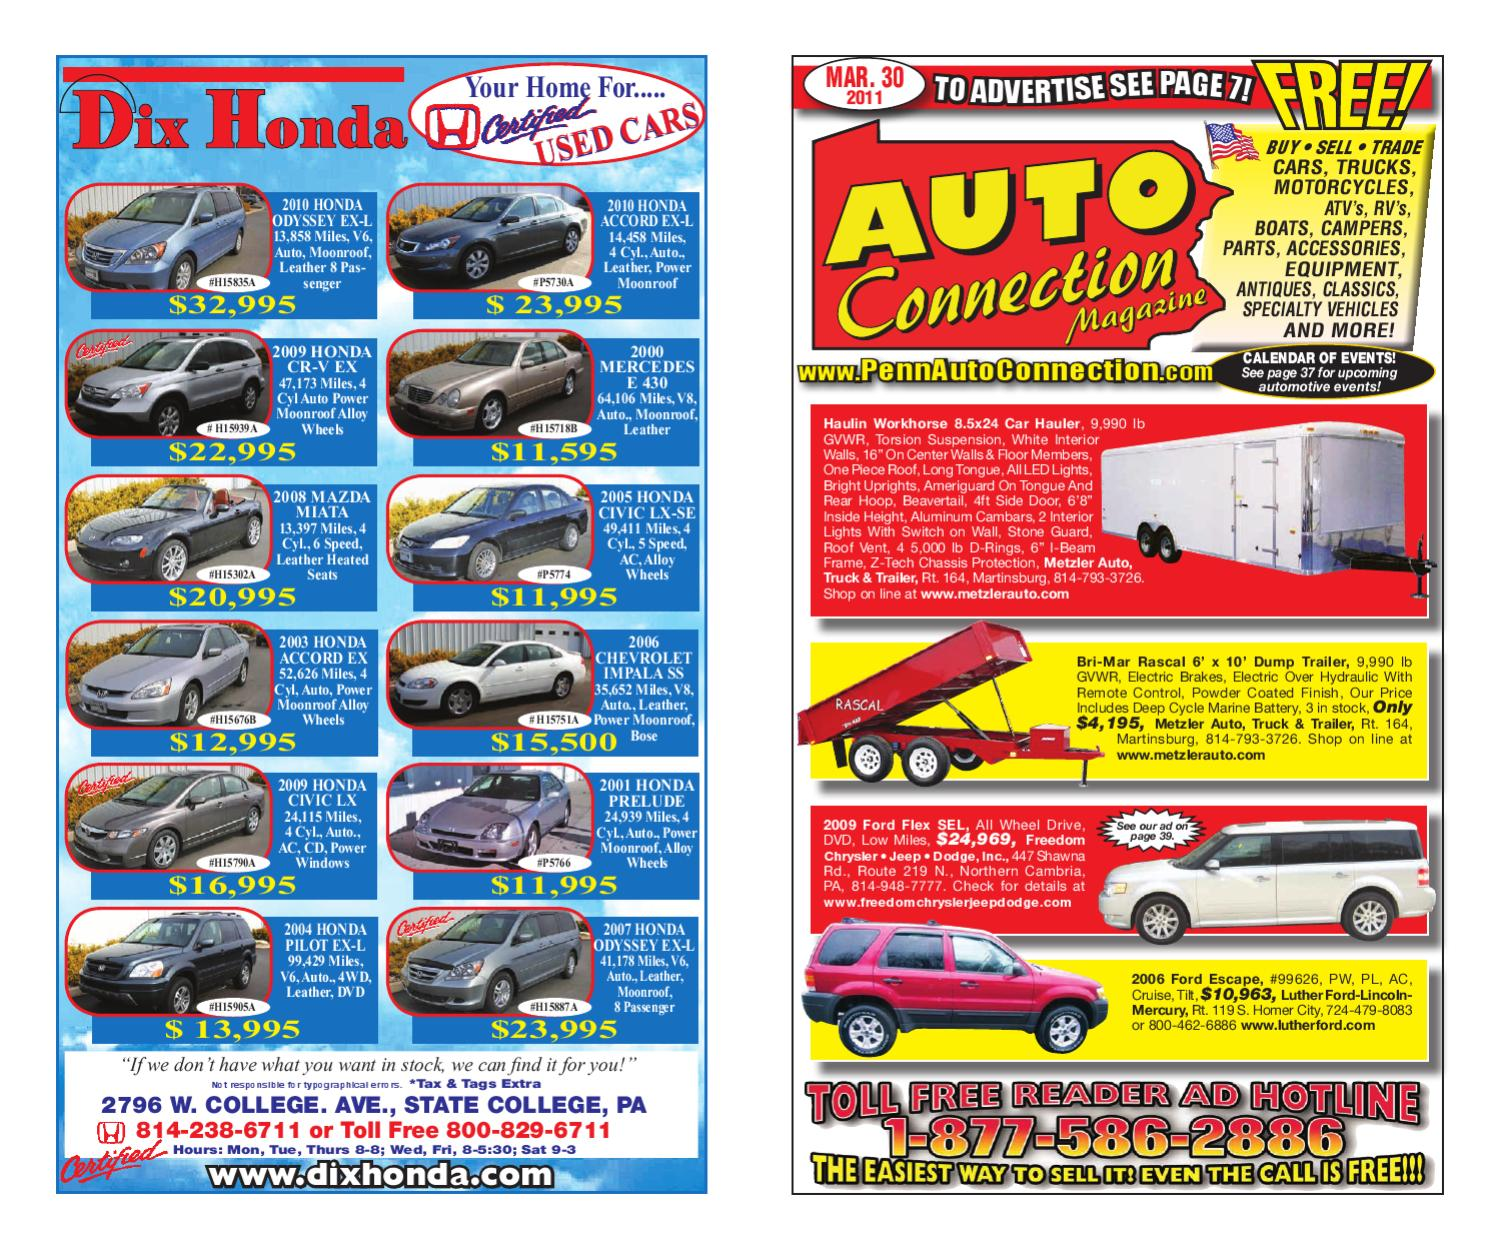 03-30-11 Auto Connection Magazine by Auto Connection